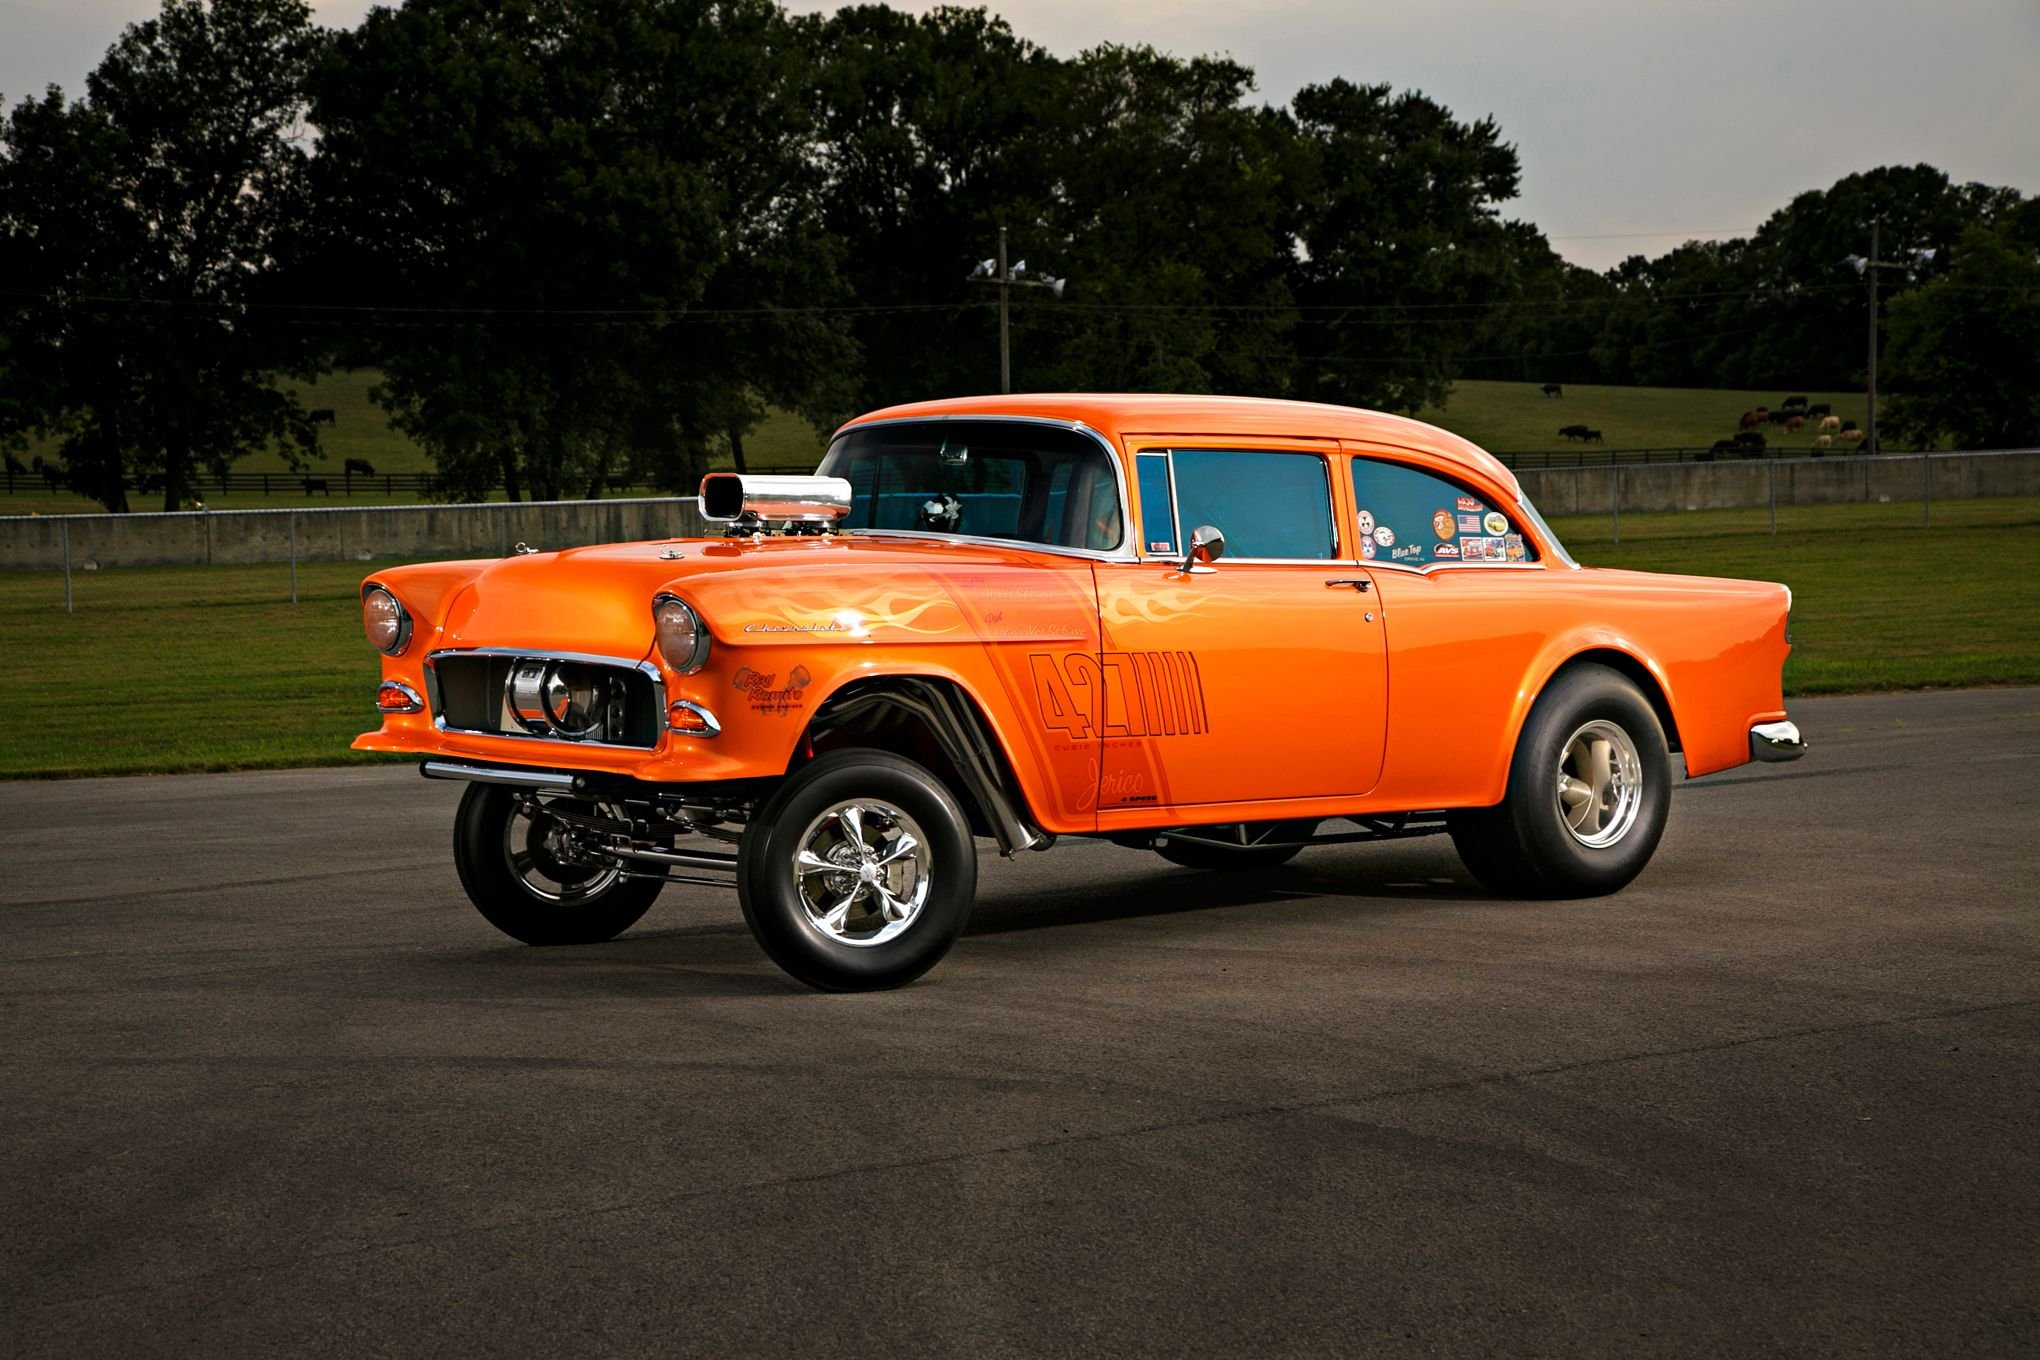 1955 Chevrolet Chevy 210 Coupe Gasser Drag OLd Style Race USA  24 2040x1360